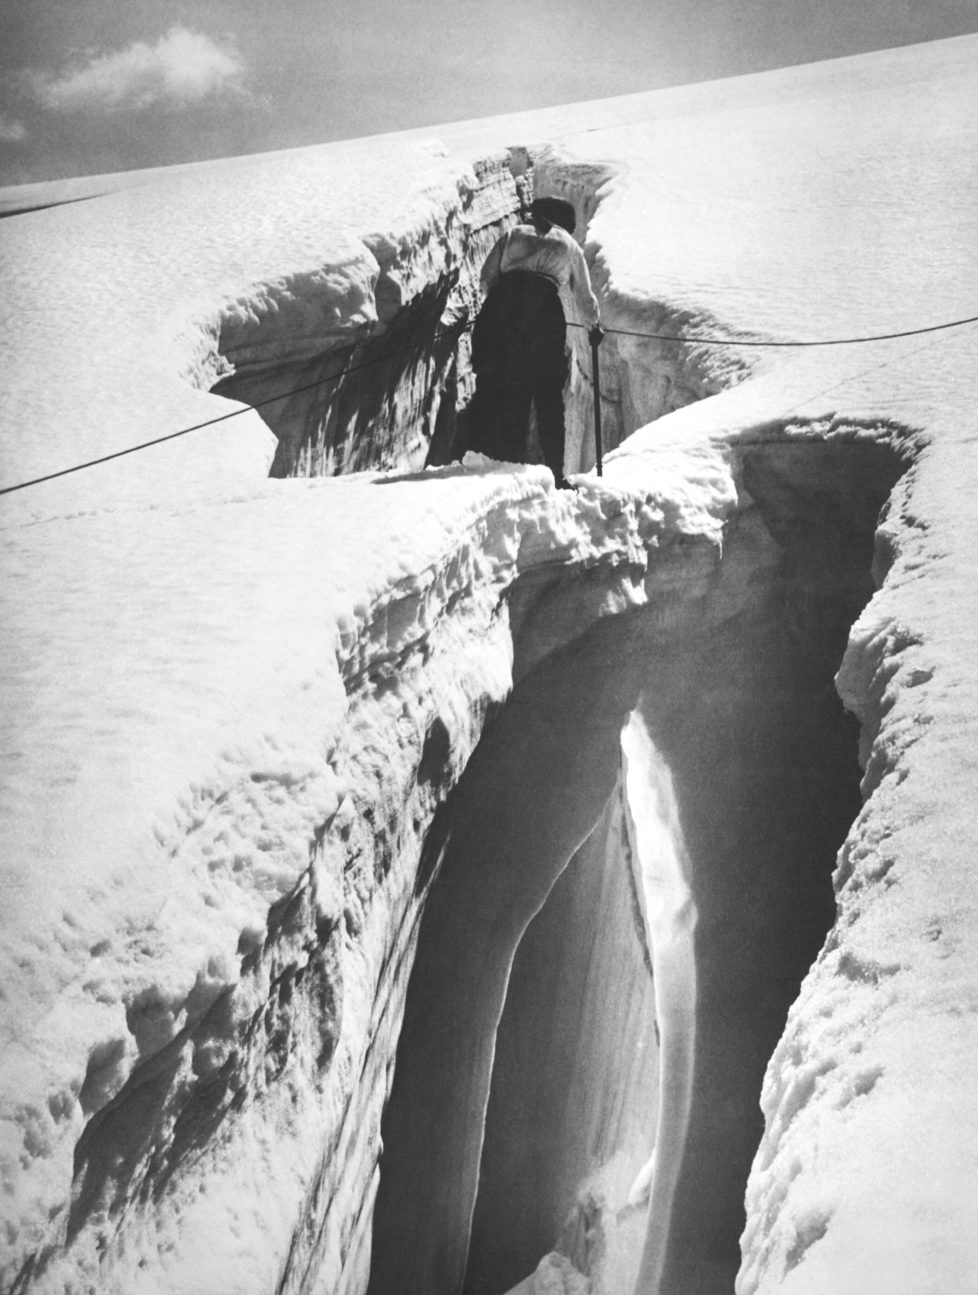 A mountain climber in the Swiss Alps cautiously traverses an ice bridge over a crevasse, Switzerland, circa 1928. (Photo by Underwood Archives/Getty Images)